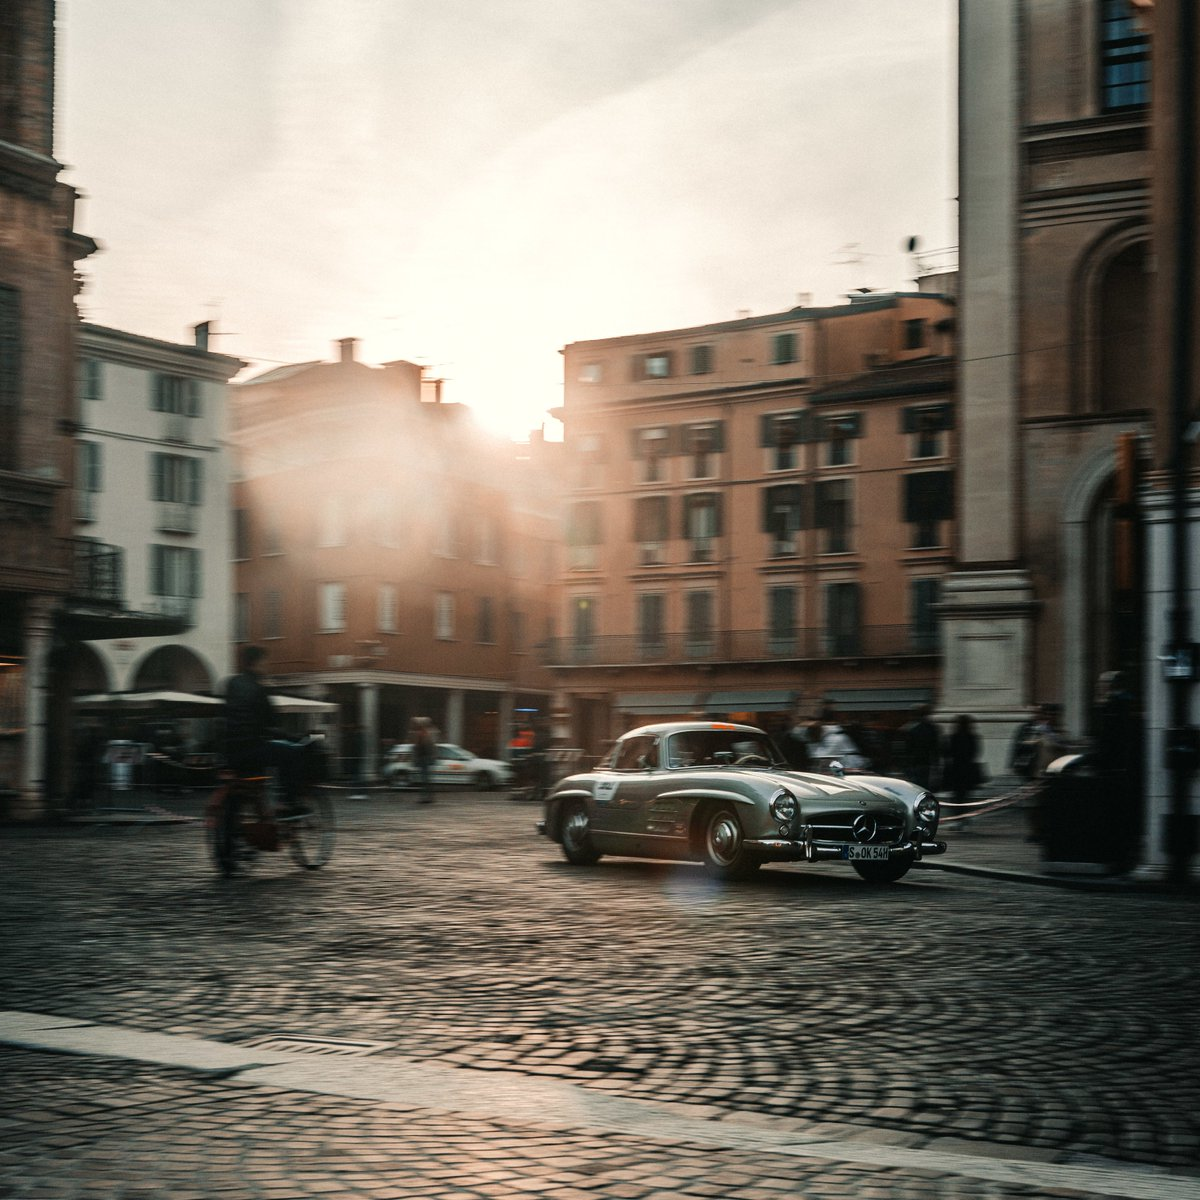 Welcome to our daily update from Italy or as we like to call it during the #MBmille: The 300 SL country 😎 #MBclassic